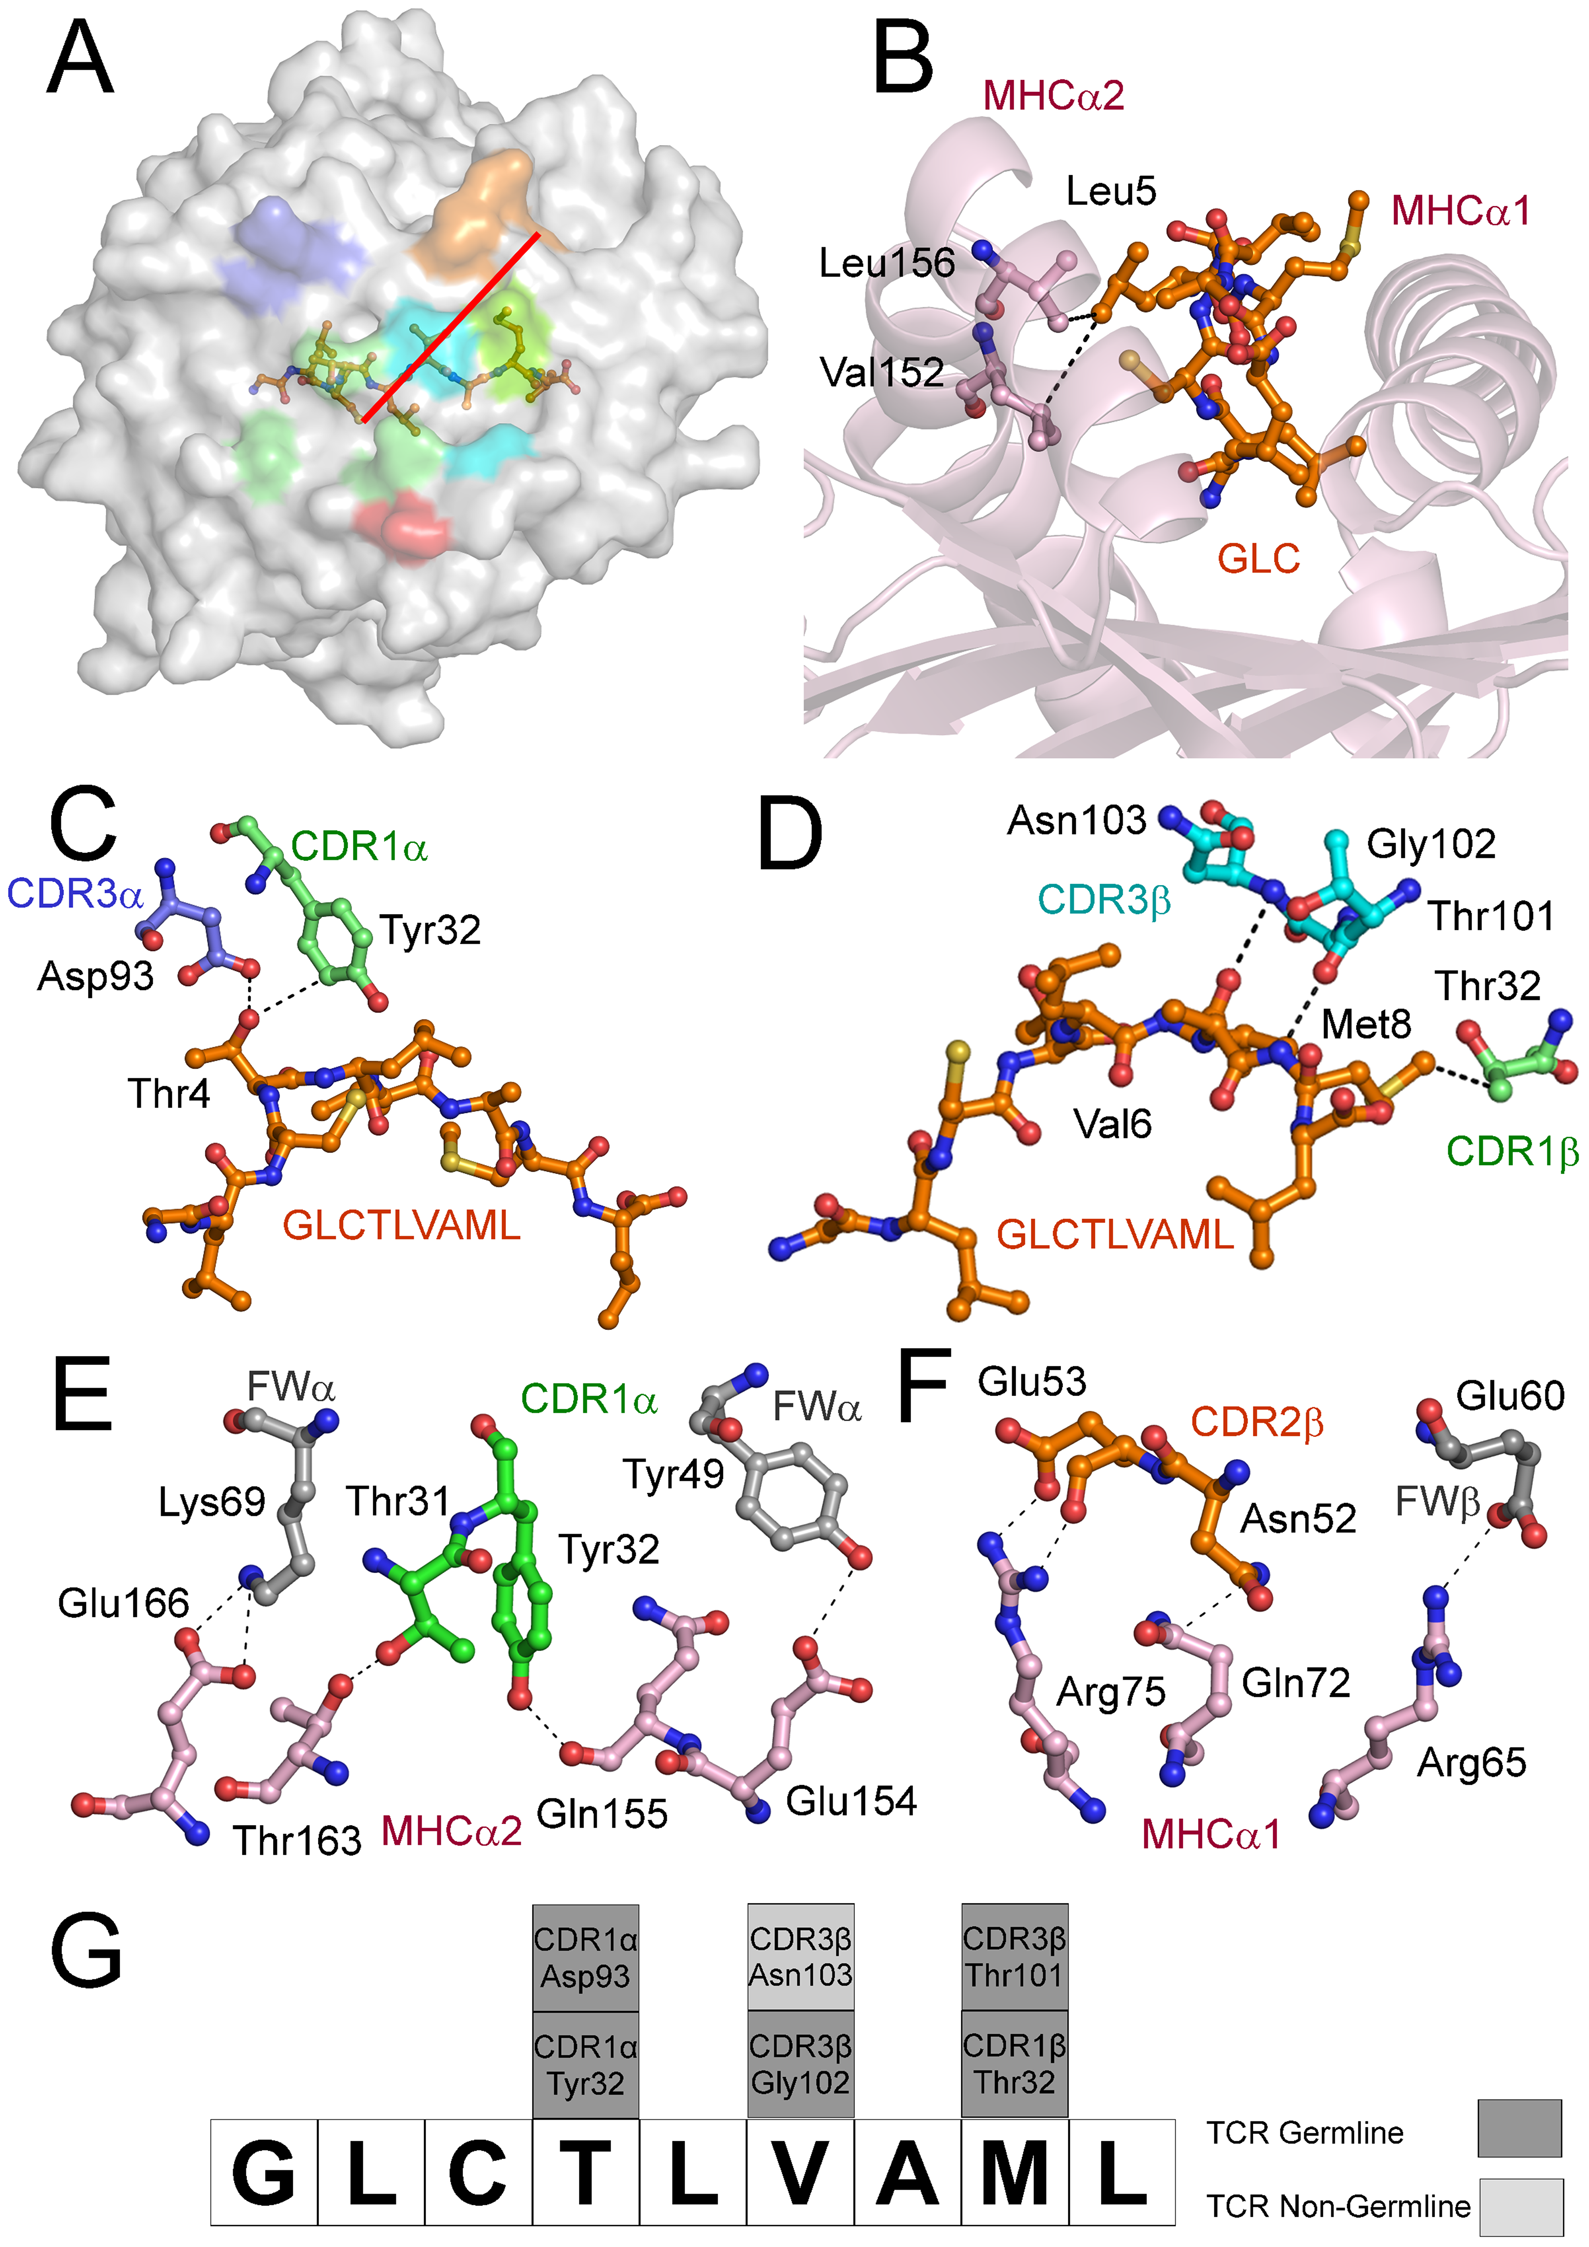 Interactions of the AS01-GLC-A2 complex.